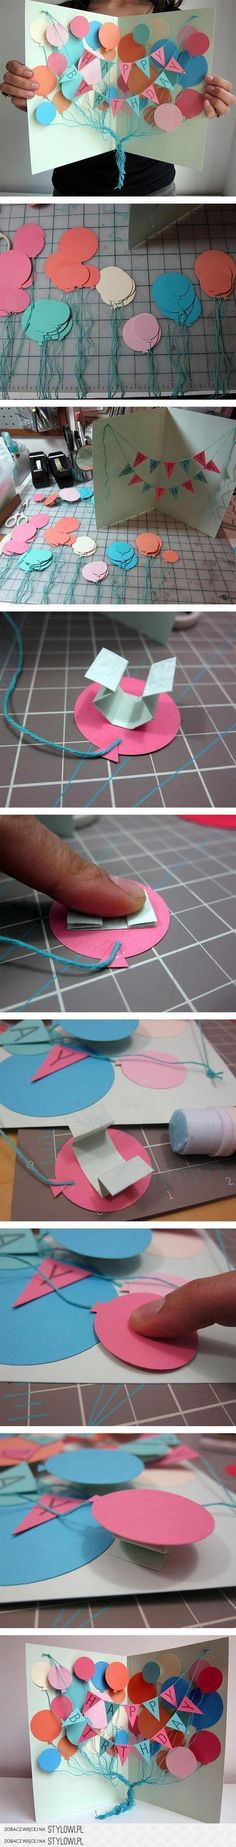 Awesome DIY Birthday Card - A Creative, Meaningful and Cheap DIY Gift for Friend. Awesome DIY Birthday Card - A Creative, Meaningful and Cheap DIY Gift for Friends and Family. Fun Crafts, Diy And Crafts, Crafts For Kids, Paper Crafts, Paper Glue, Tarjetas Diy, Crafty Craft, Diy Cards, Homemade Cards